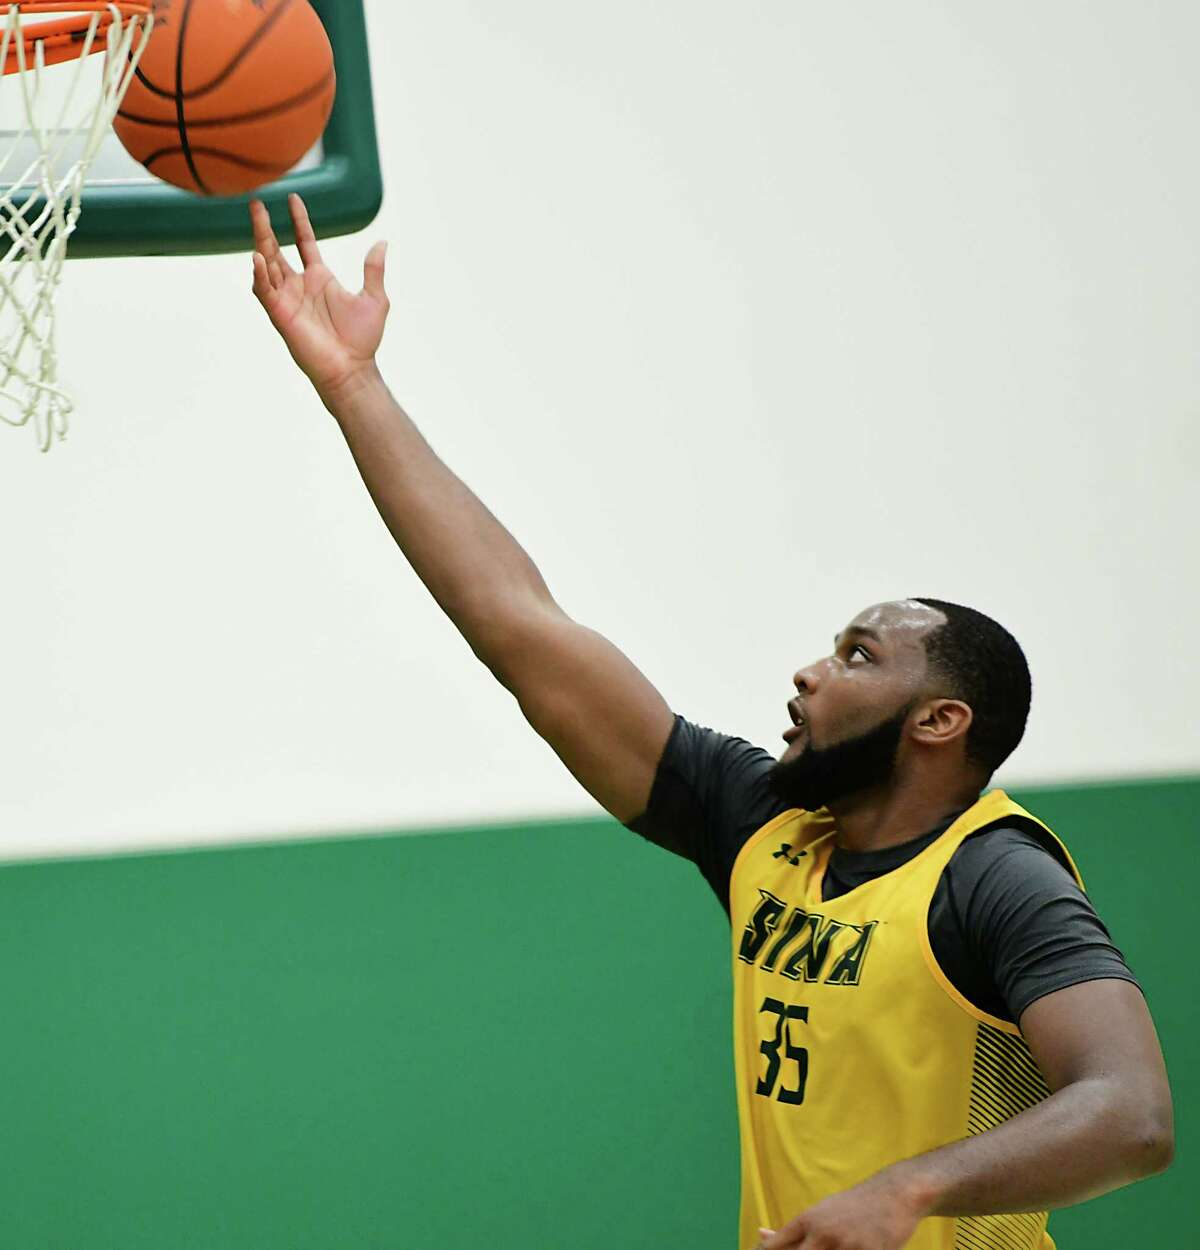 Sammy Friday, #35, is seen as the Siena men's basketball team hold its first official practice of the season at Siena College on Thursday, Sept. 26, 2019 in Loudonville, N.Y. (Lori Van Buren/Times Union)